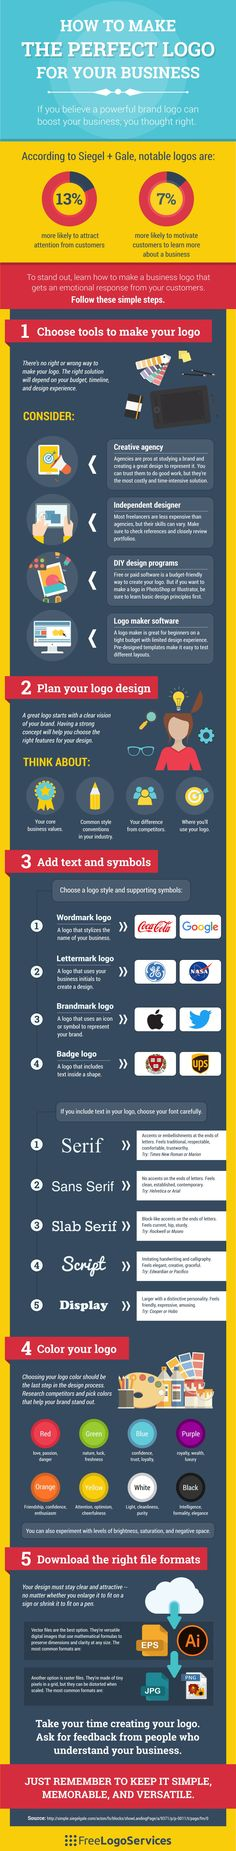 How to Make the Perfect Logo for Your Business #Infographic #Business